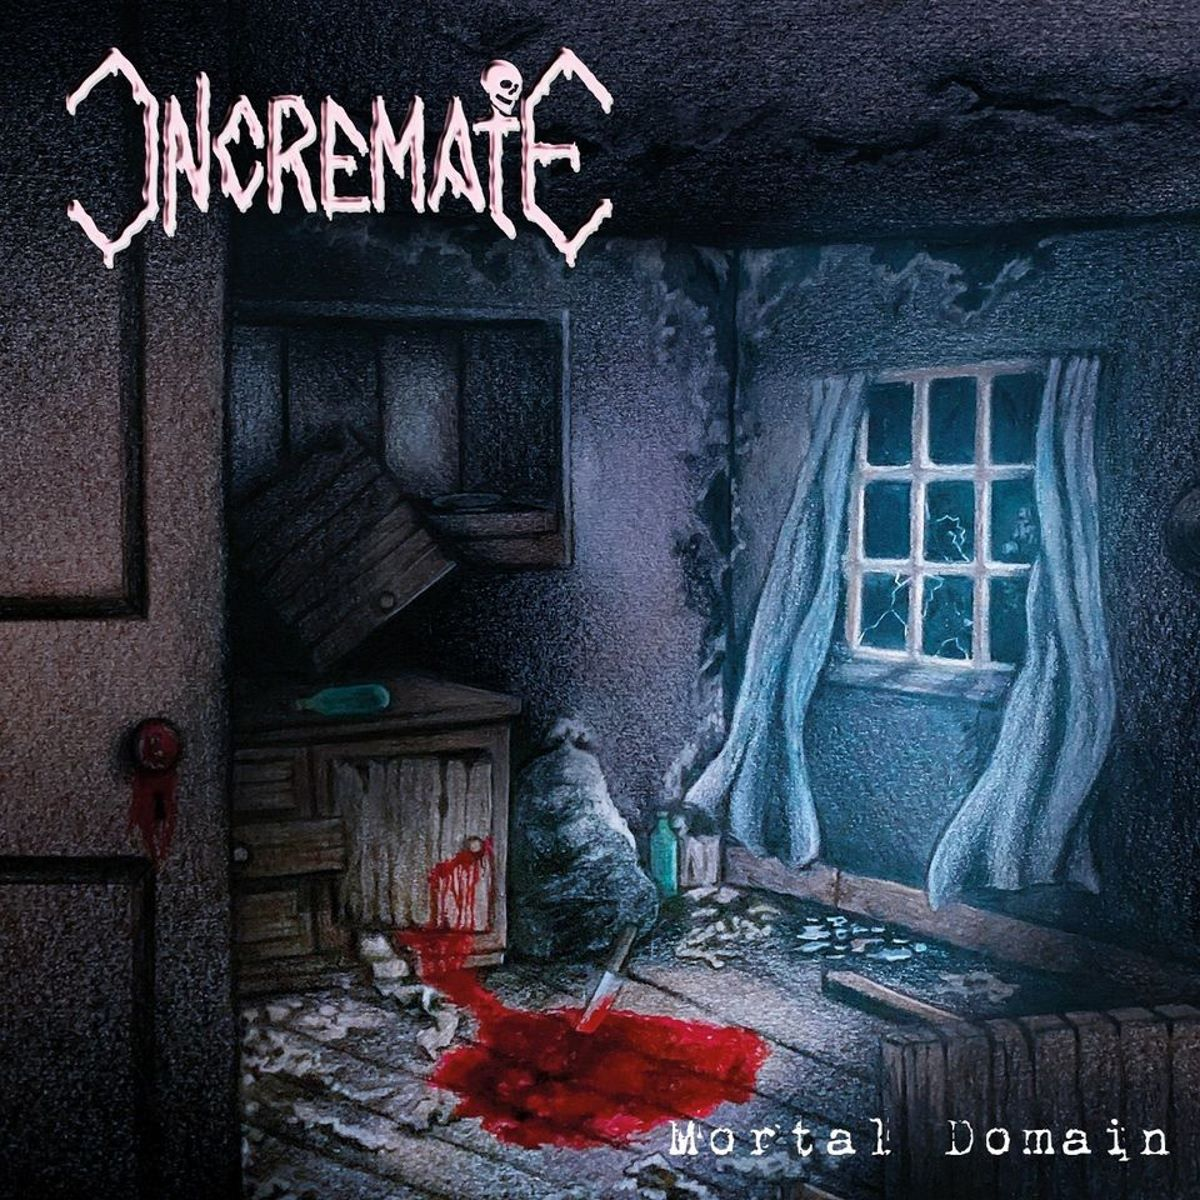 incremate - mortal domain - album cover